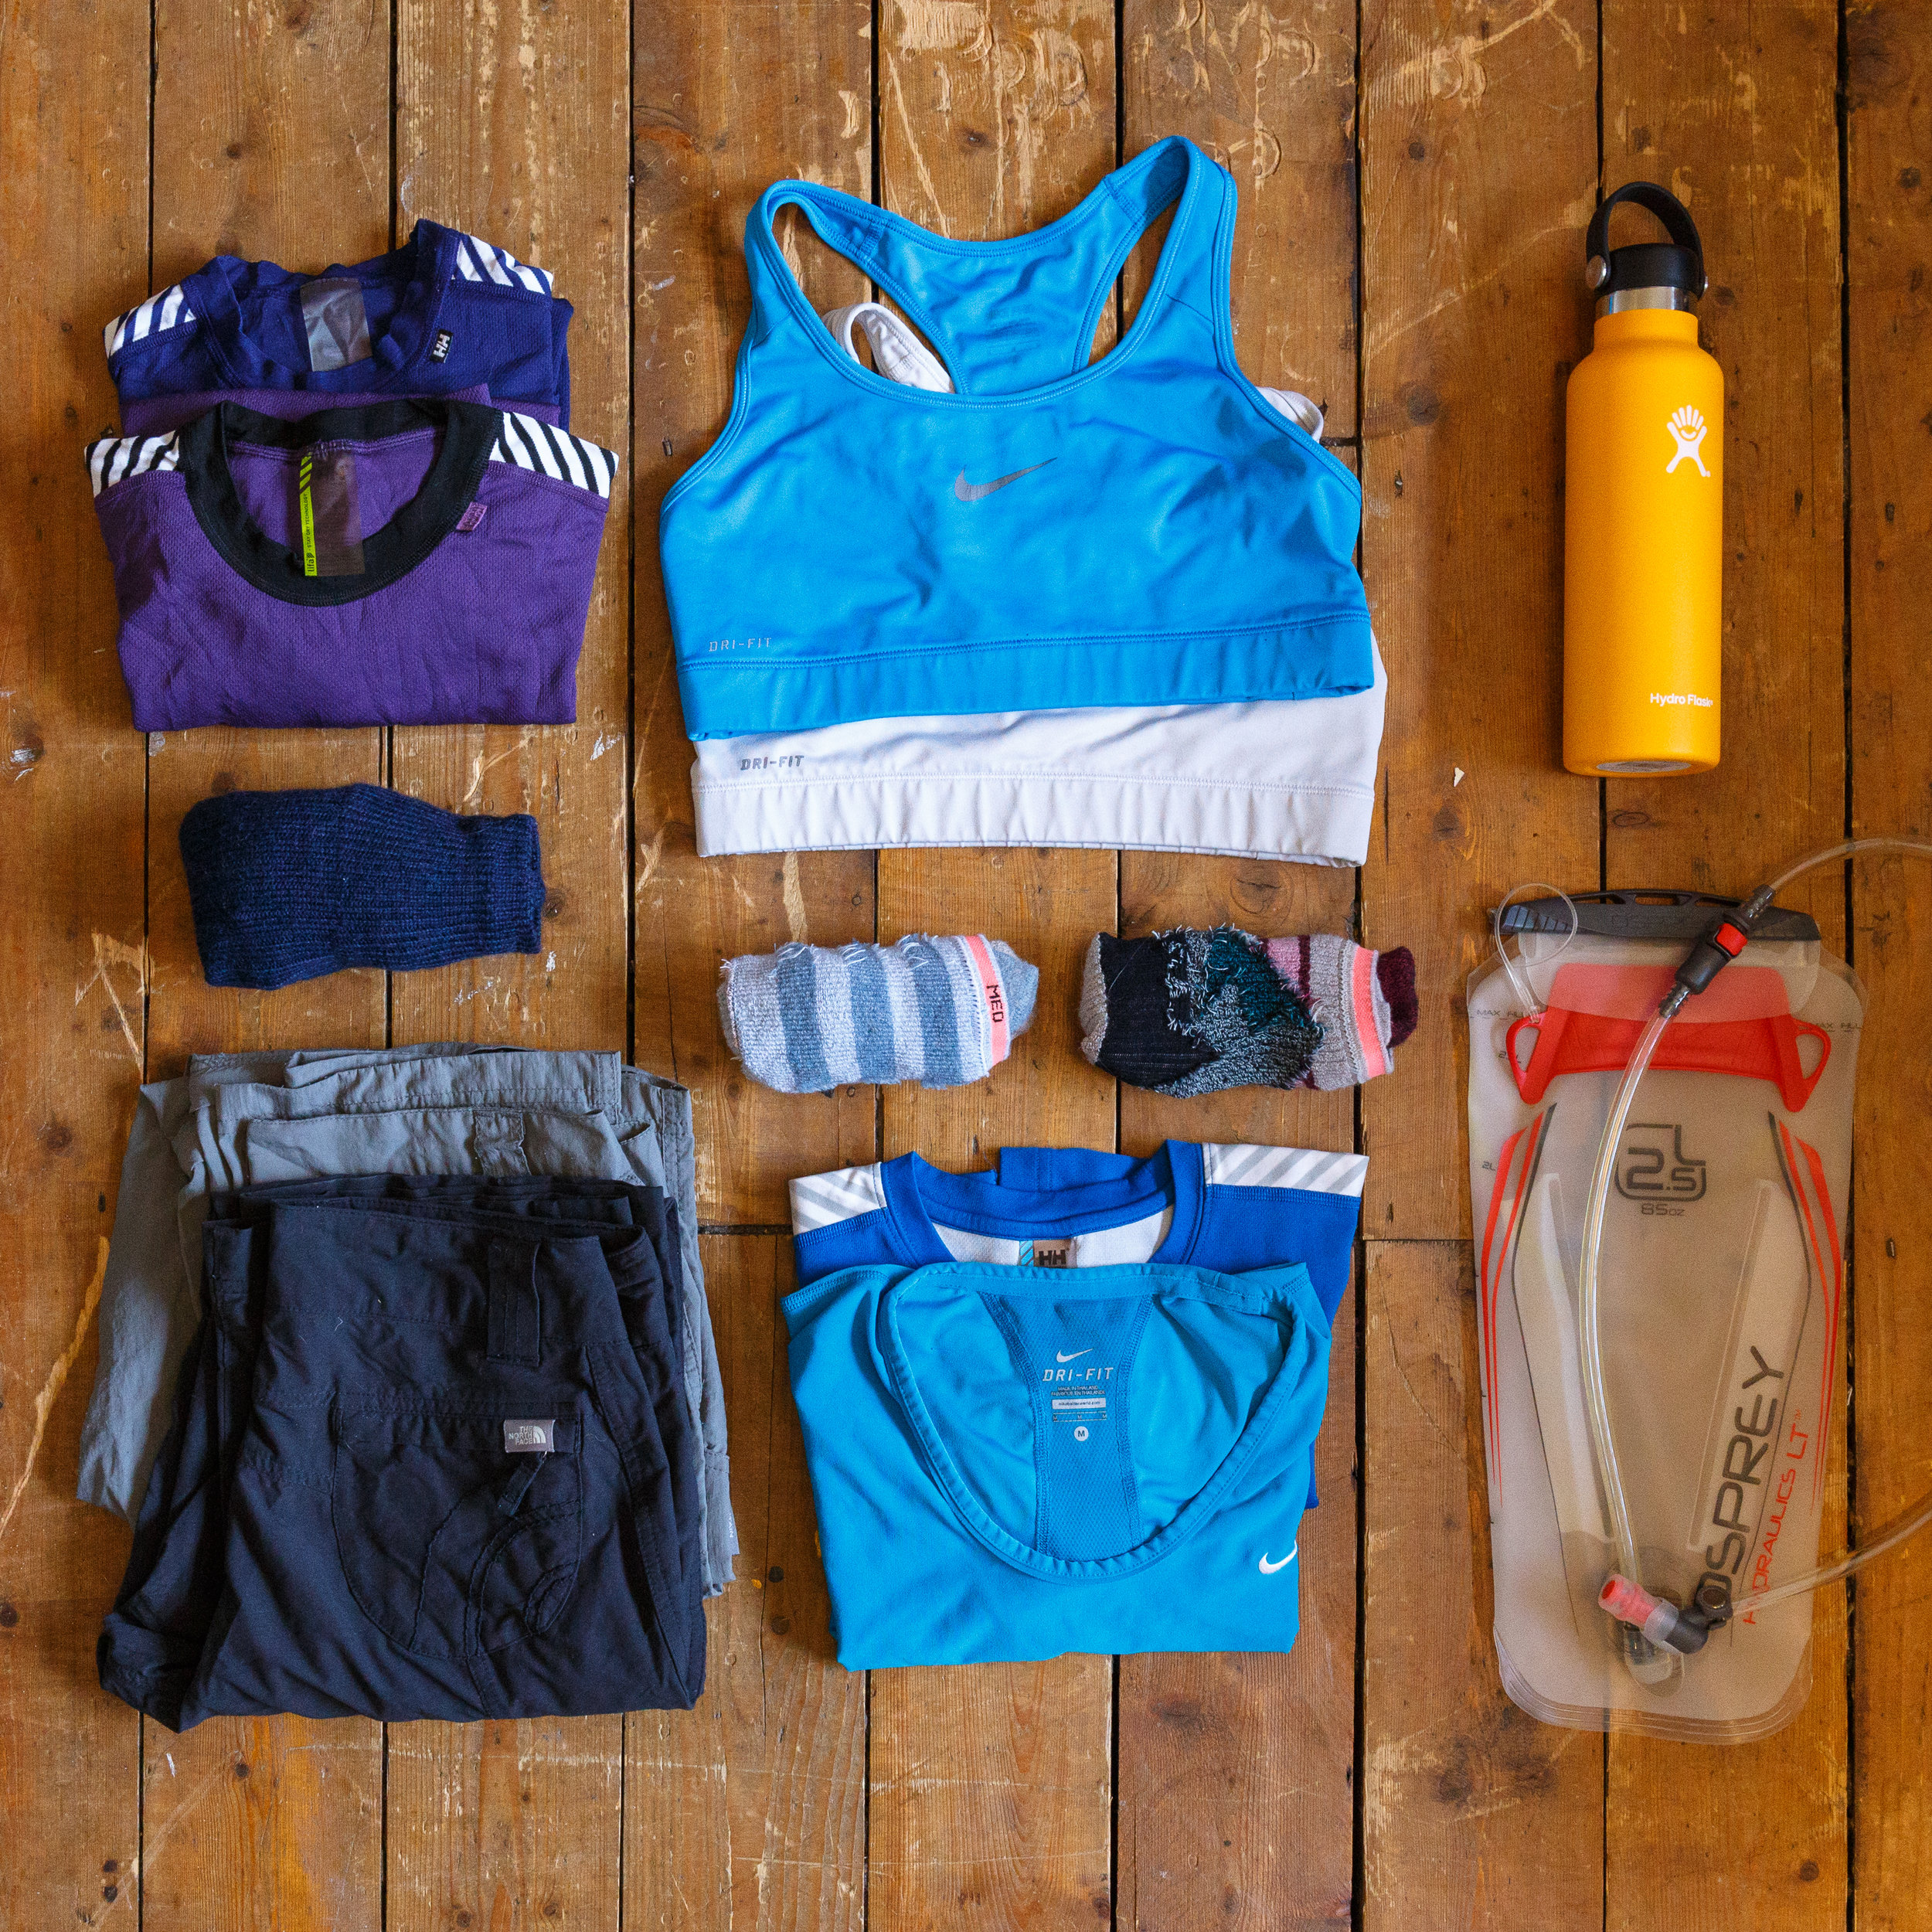 Left to Right: Helly Hansen Baselayers, Nike Sports Bras, Hydro-Flask, RMBLR Kinder socks, Stance Socks x 2, Osprey Hydration Pack, Mountain Warehouse and North Face walking trousers, Helly Hansen t-shirt and NIKE t-shirt